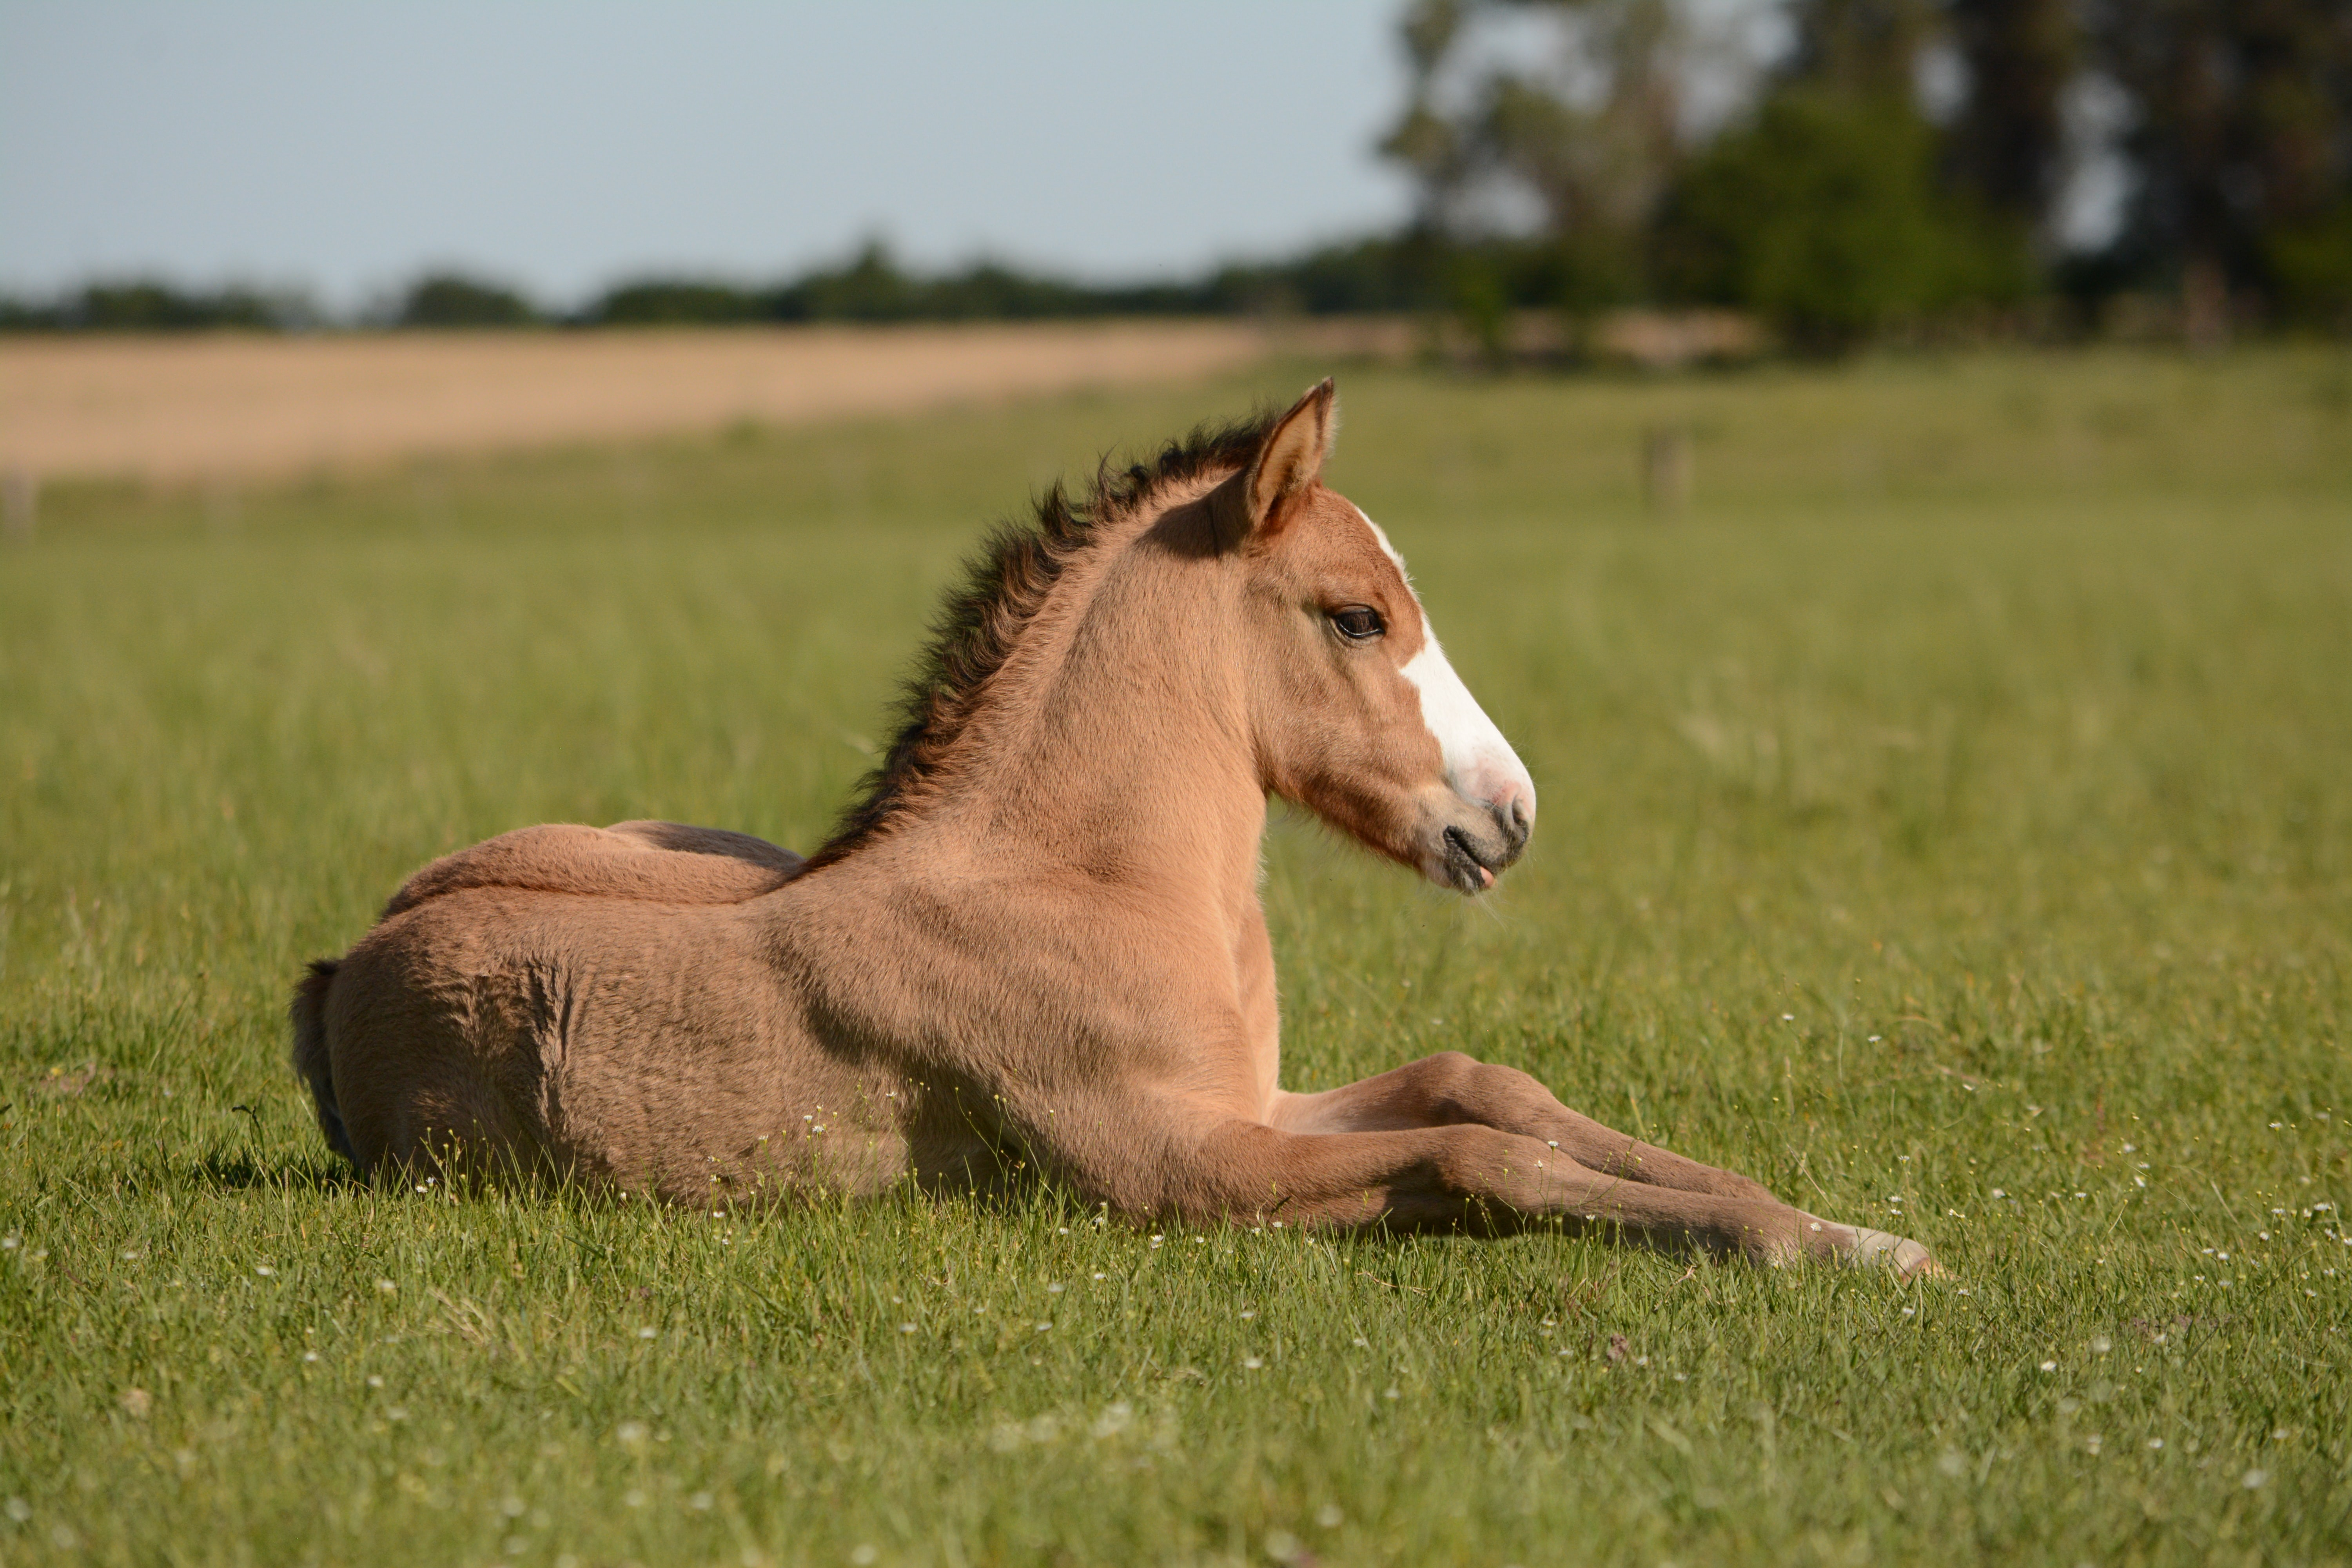 Small horse in grass